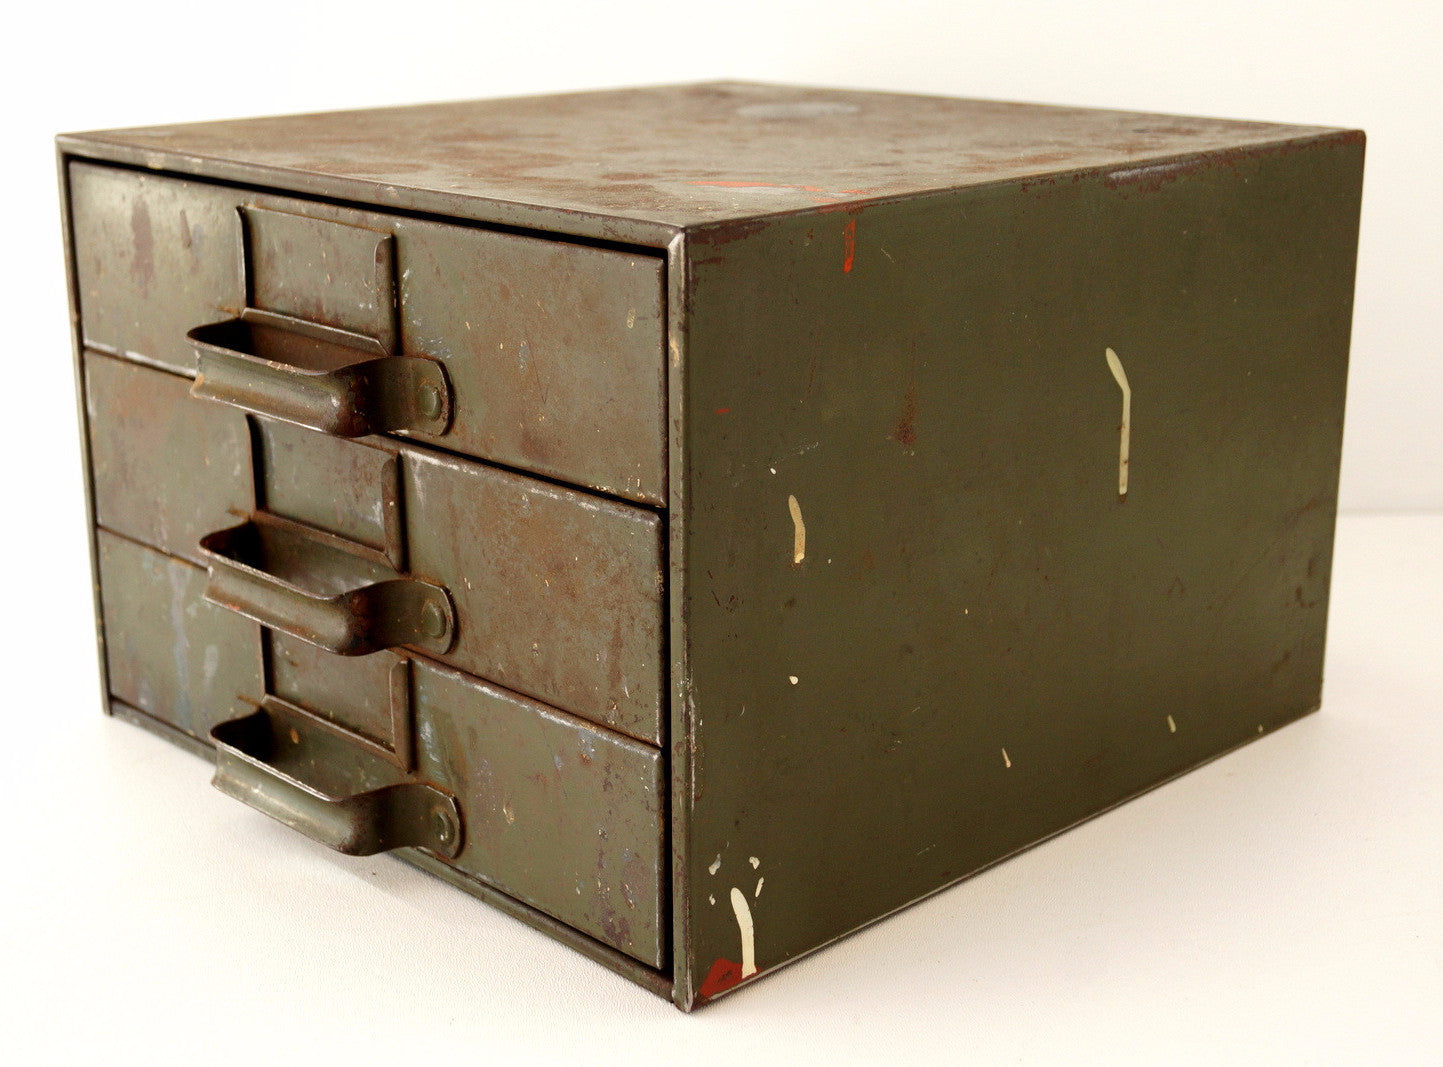 industrial furniture hardware. Industrial Furniture Hardware. ThirdShiftVintage Vintage Hardware Cabinet Parts Bin With 3 Drawers (c S